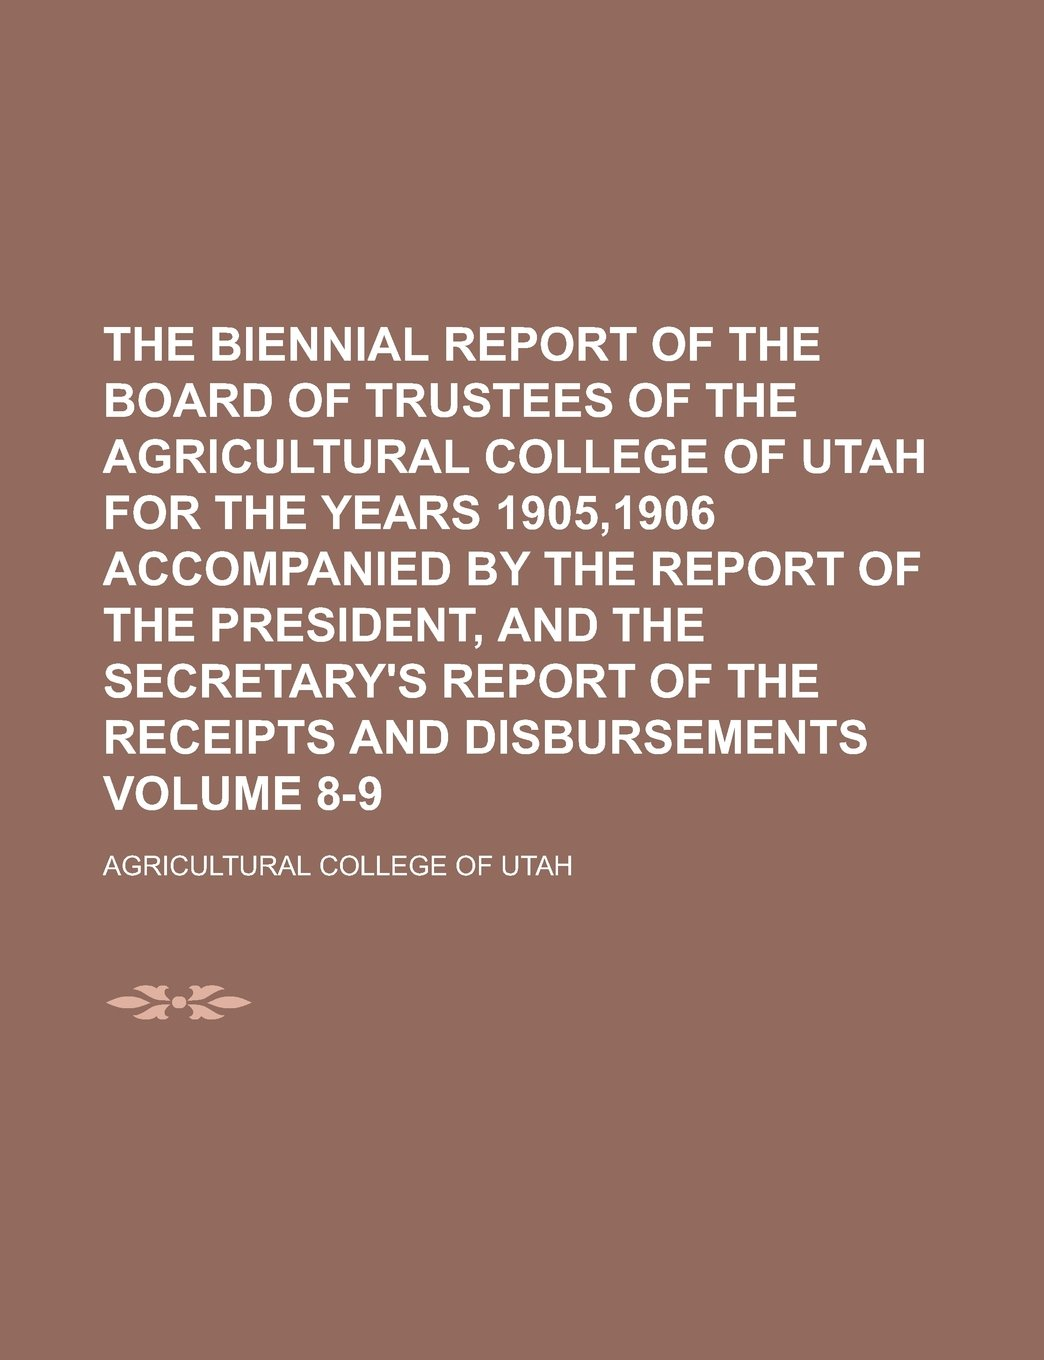 Download The biennial report of the Board of Trustees of the Agricultural College of Utah for the years 1905,1906 accompanied by the Report of the President, ... of the receipts and disbursements Volume 8-9 PDF